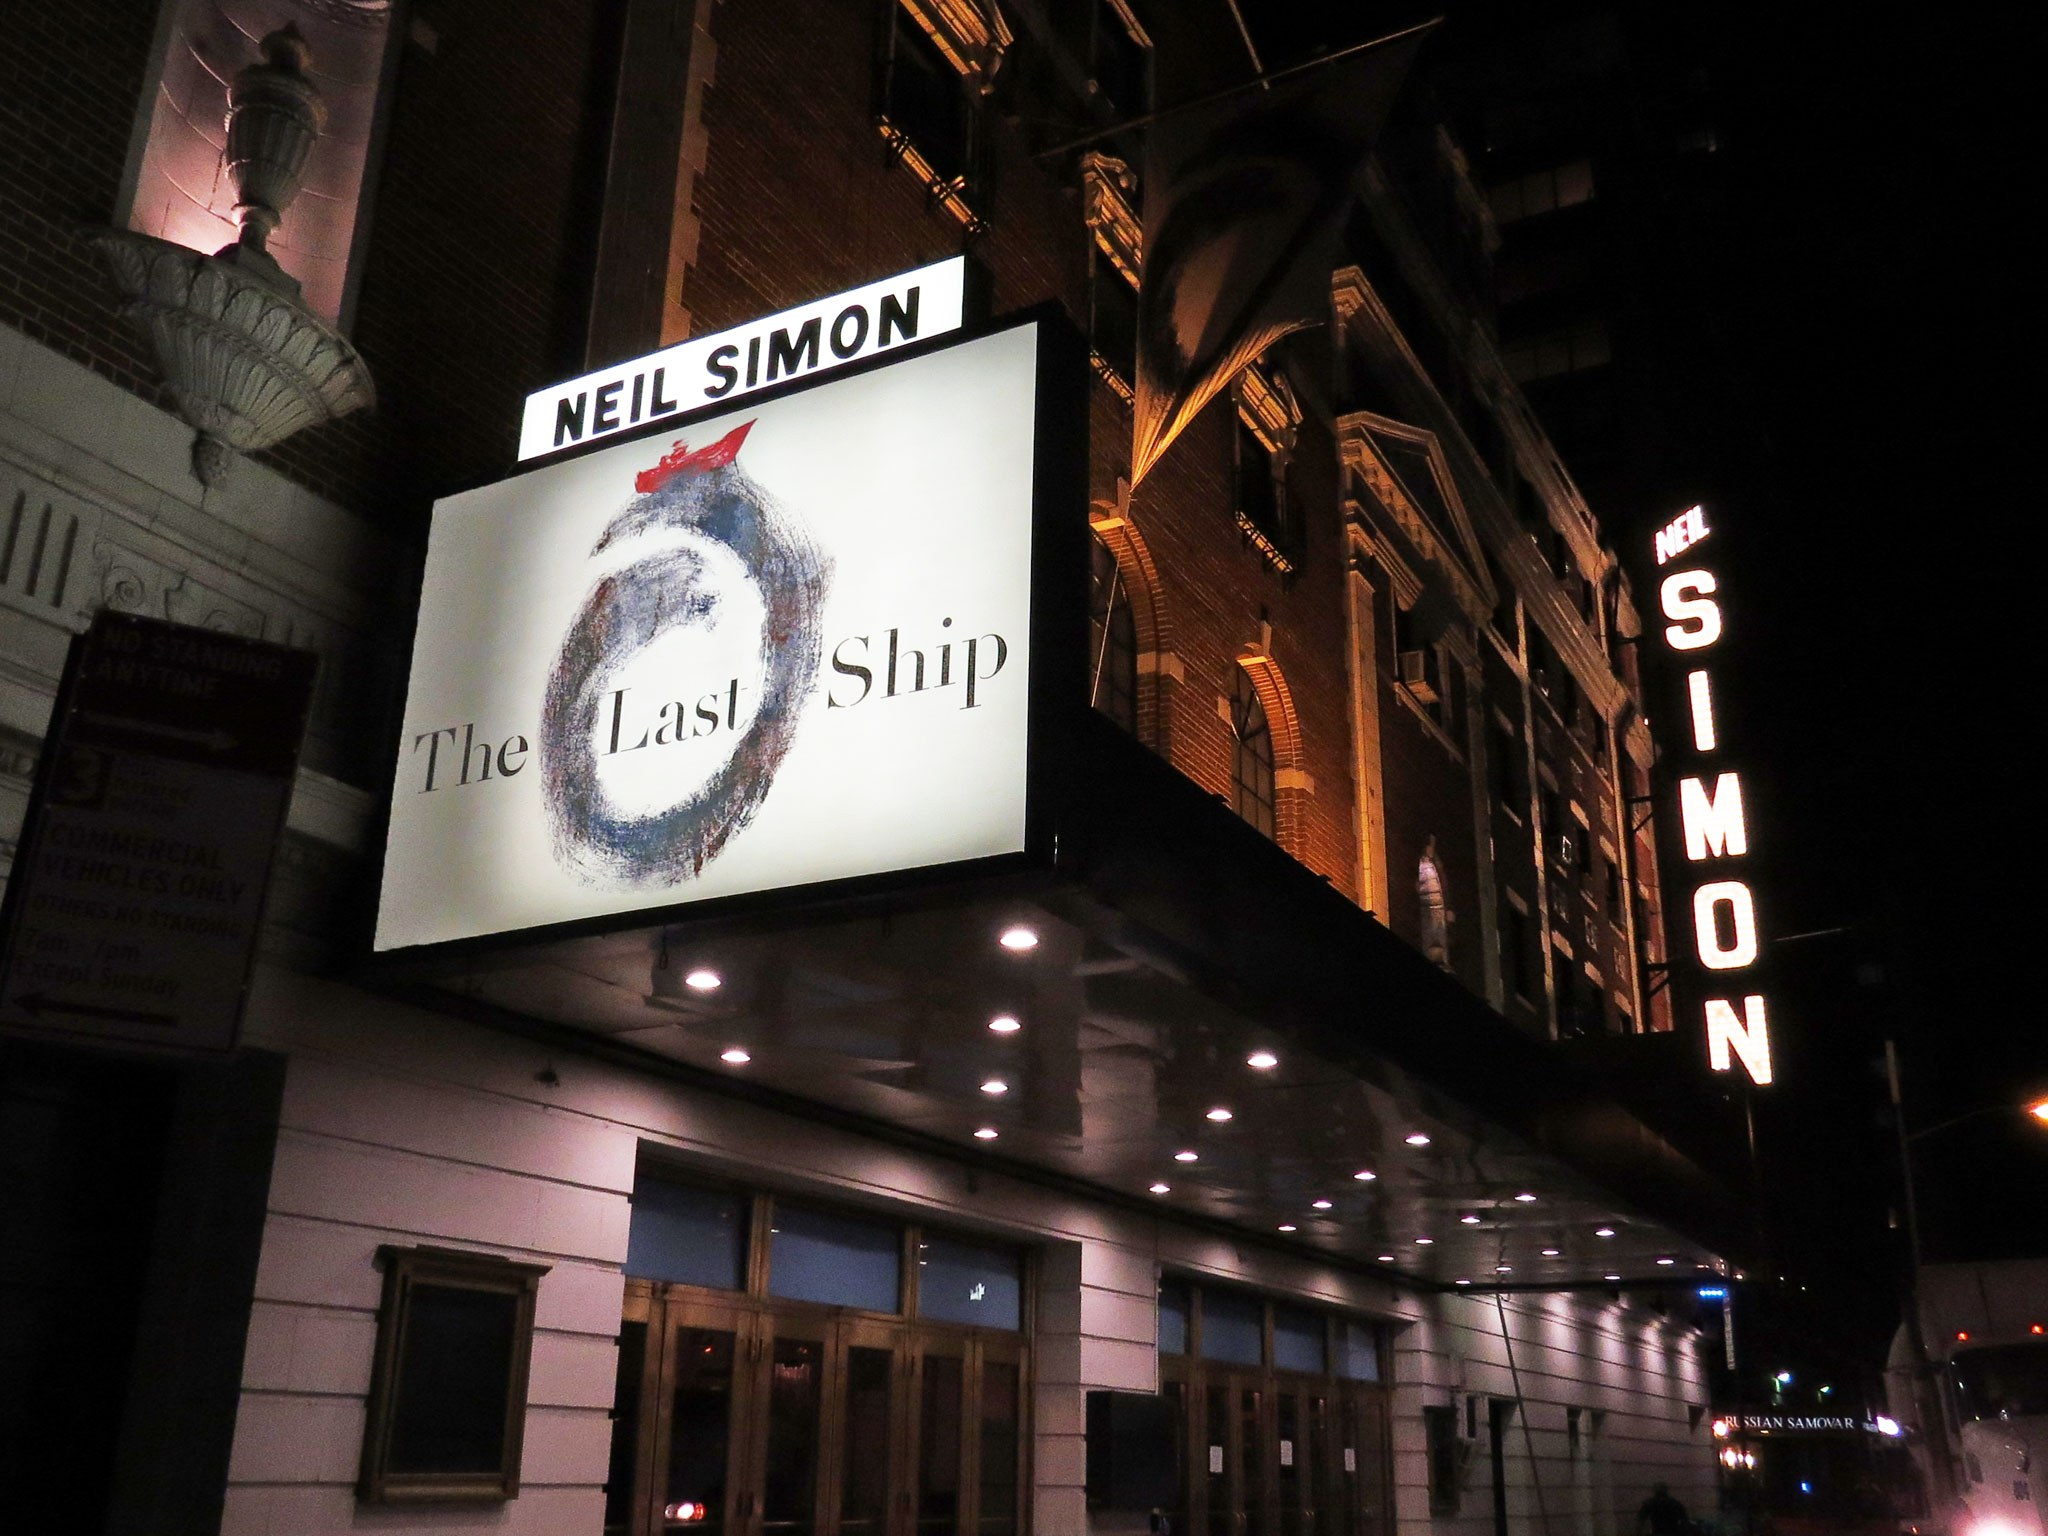 The Last Ship Marquee